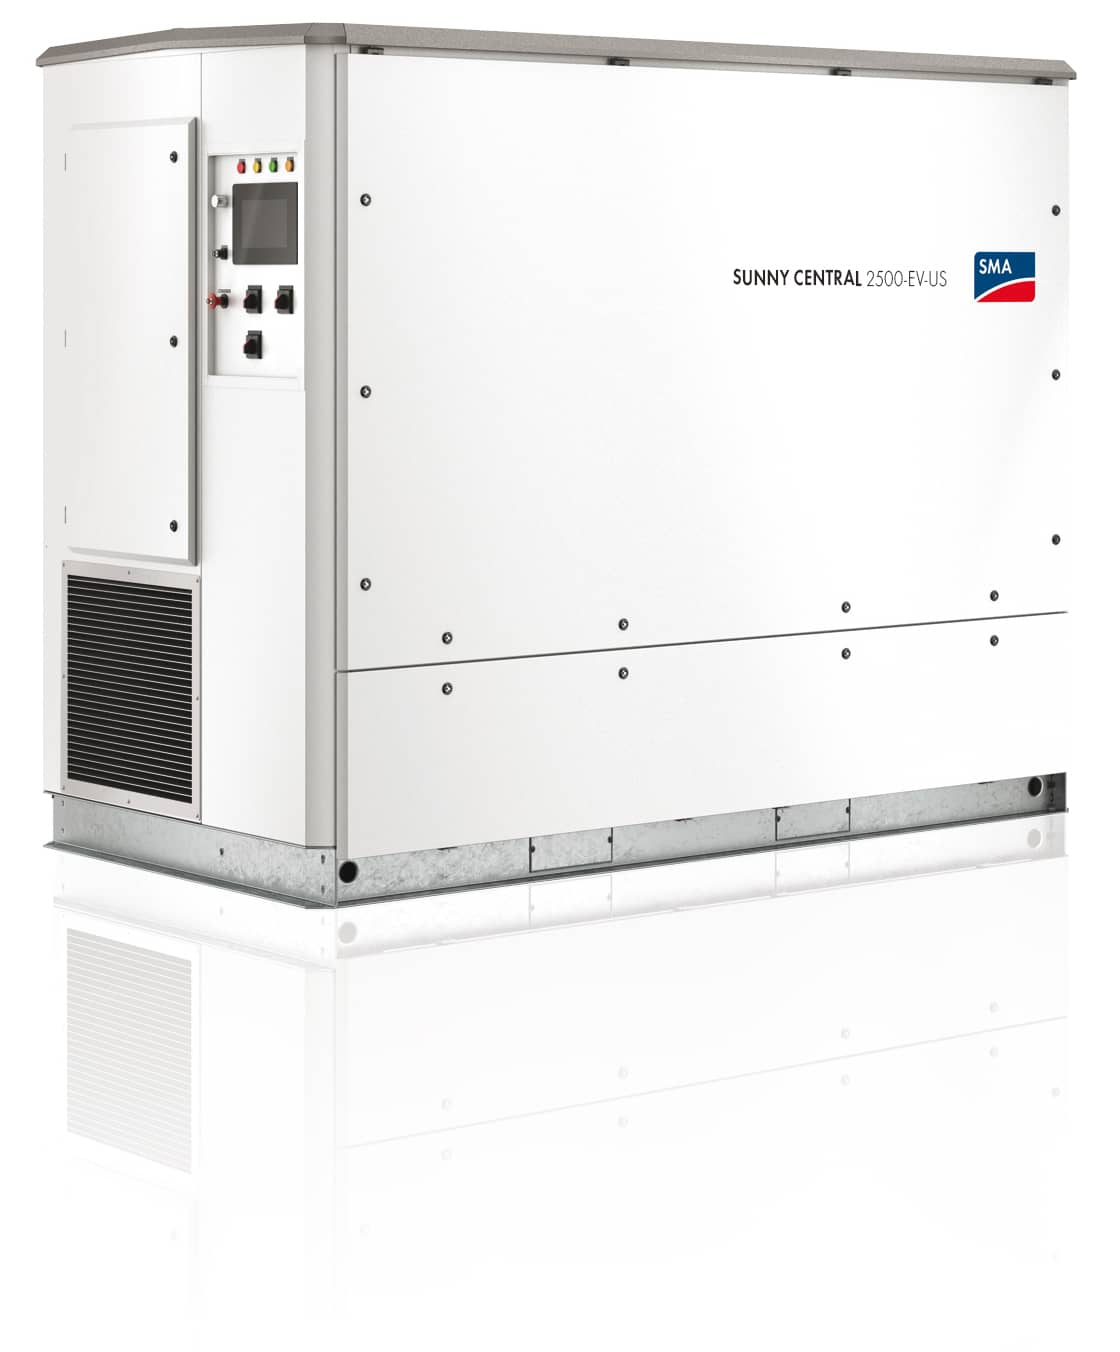 sma offers new central inverter nets ul certification